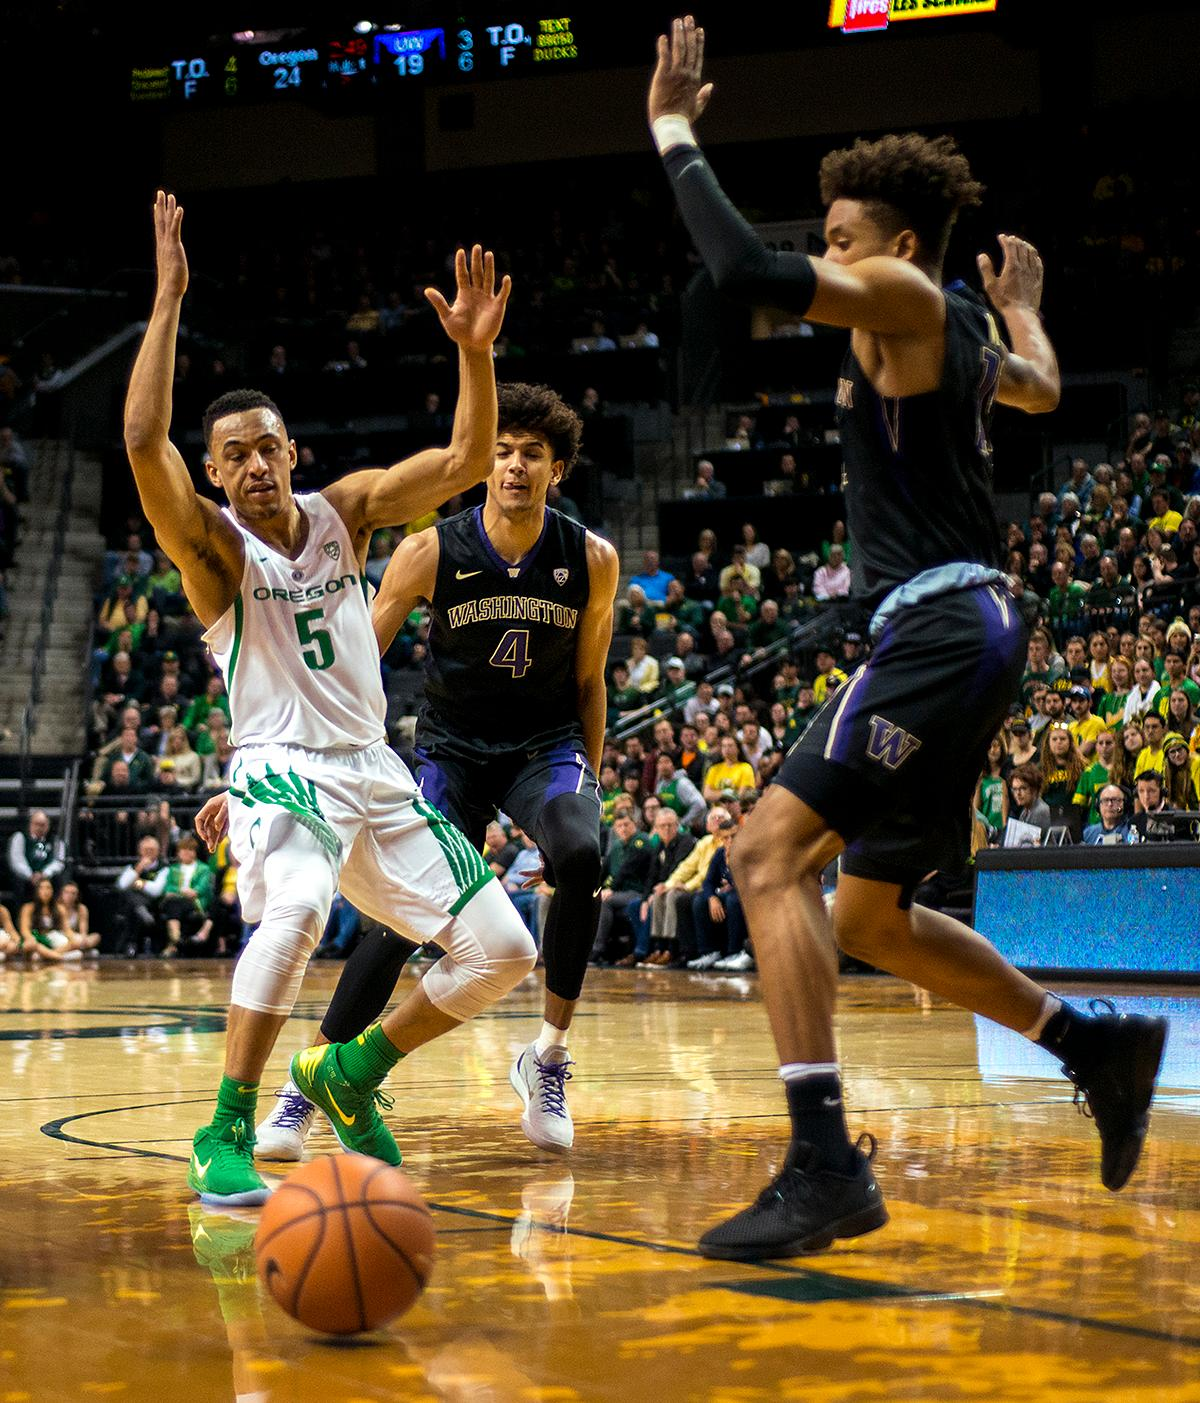 Oregon Ducks guard Elijah Brown (#5) and Washington Huskies guard Matisse Thybulle (#4) react as the ball become loose and rolls out of bounds. The Oregon Ducks defeated the Washington Huskies 65-40 on Thursday night at Matthew Knight Arena. Troy Brown, Junior led Oregon with 21 points to match his career high, and Kenny Wooten set a career best of seven shots blocked. The Ducks now stand 6-5 in the Pac-12 conference play. Photo by Abigail Winn, Oregon News Lab